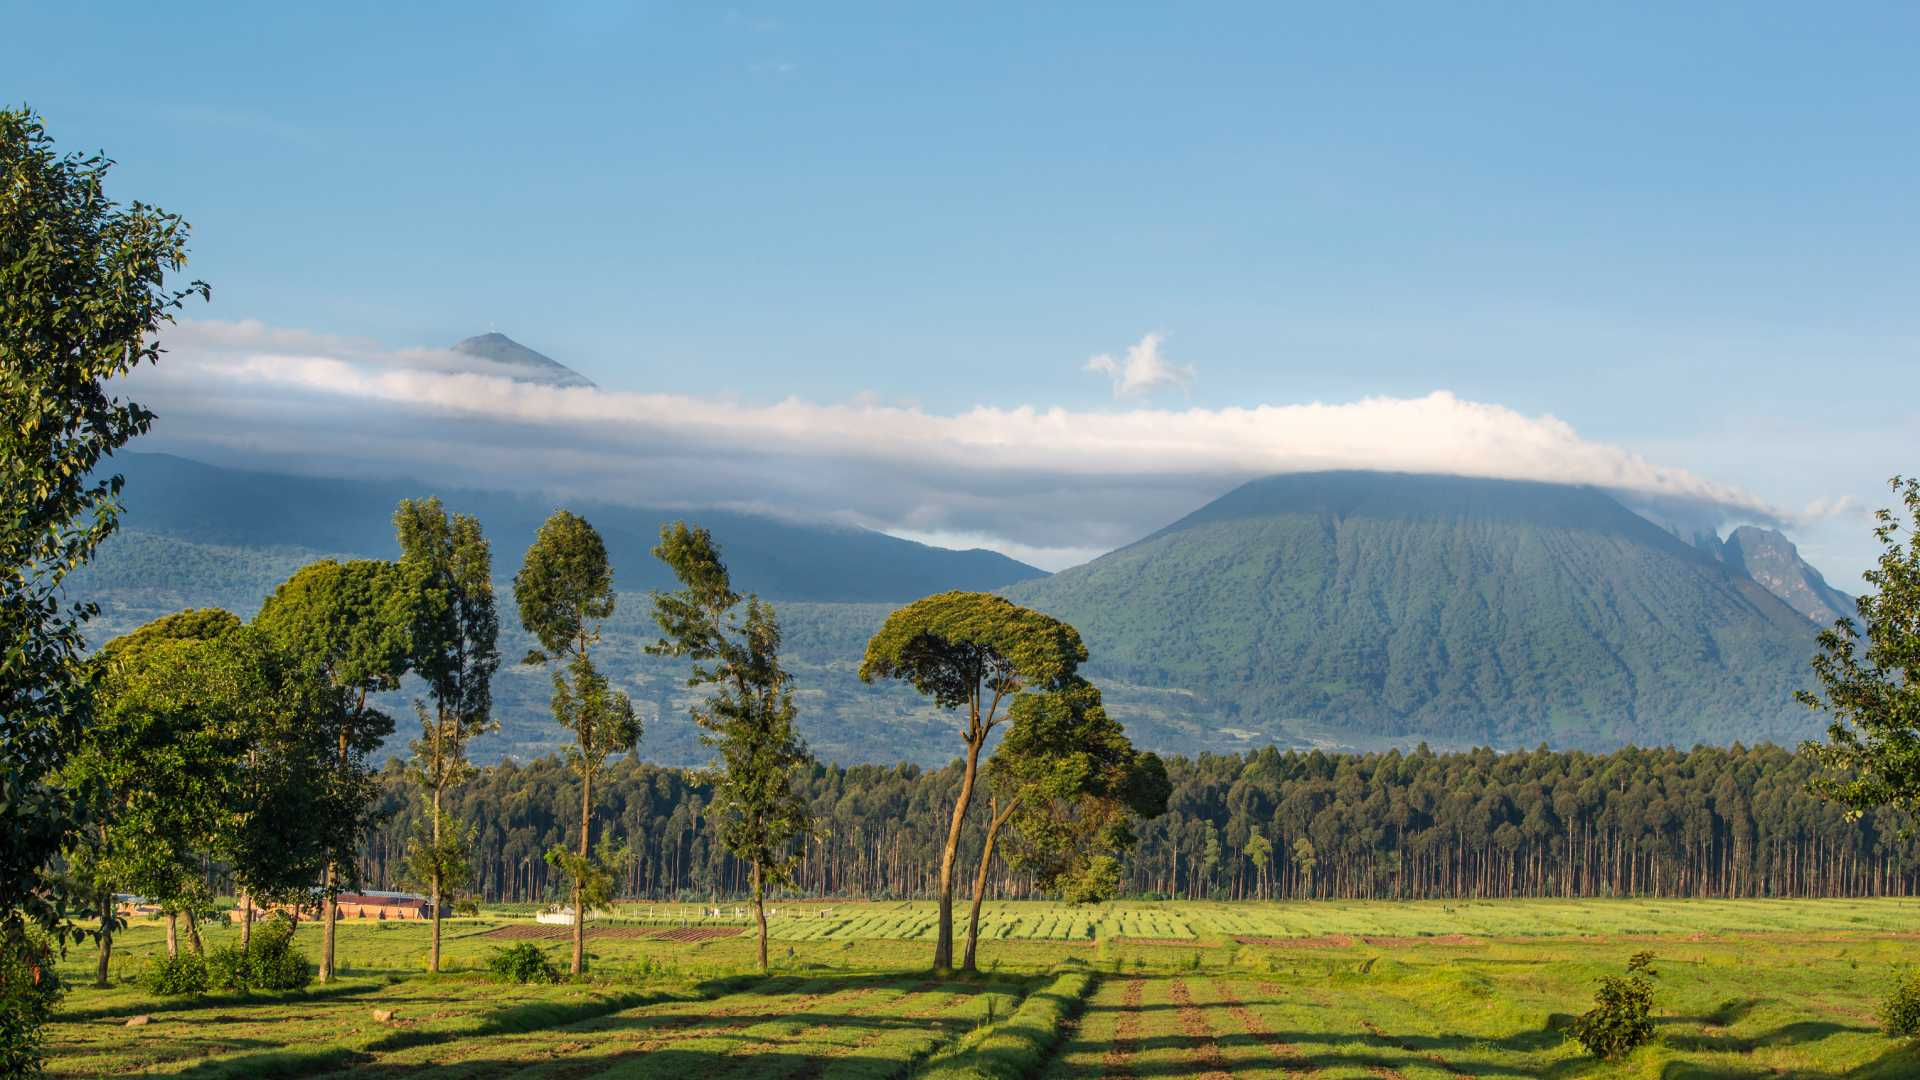 THINGS YOU SHOULDN'T MISS IN RWANDA